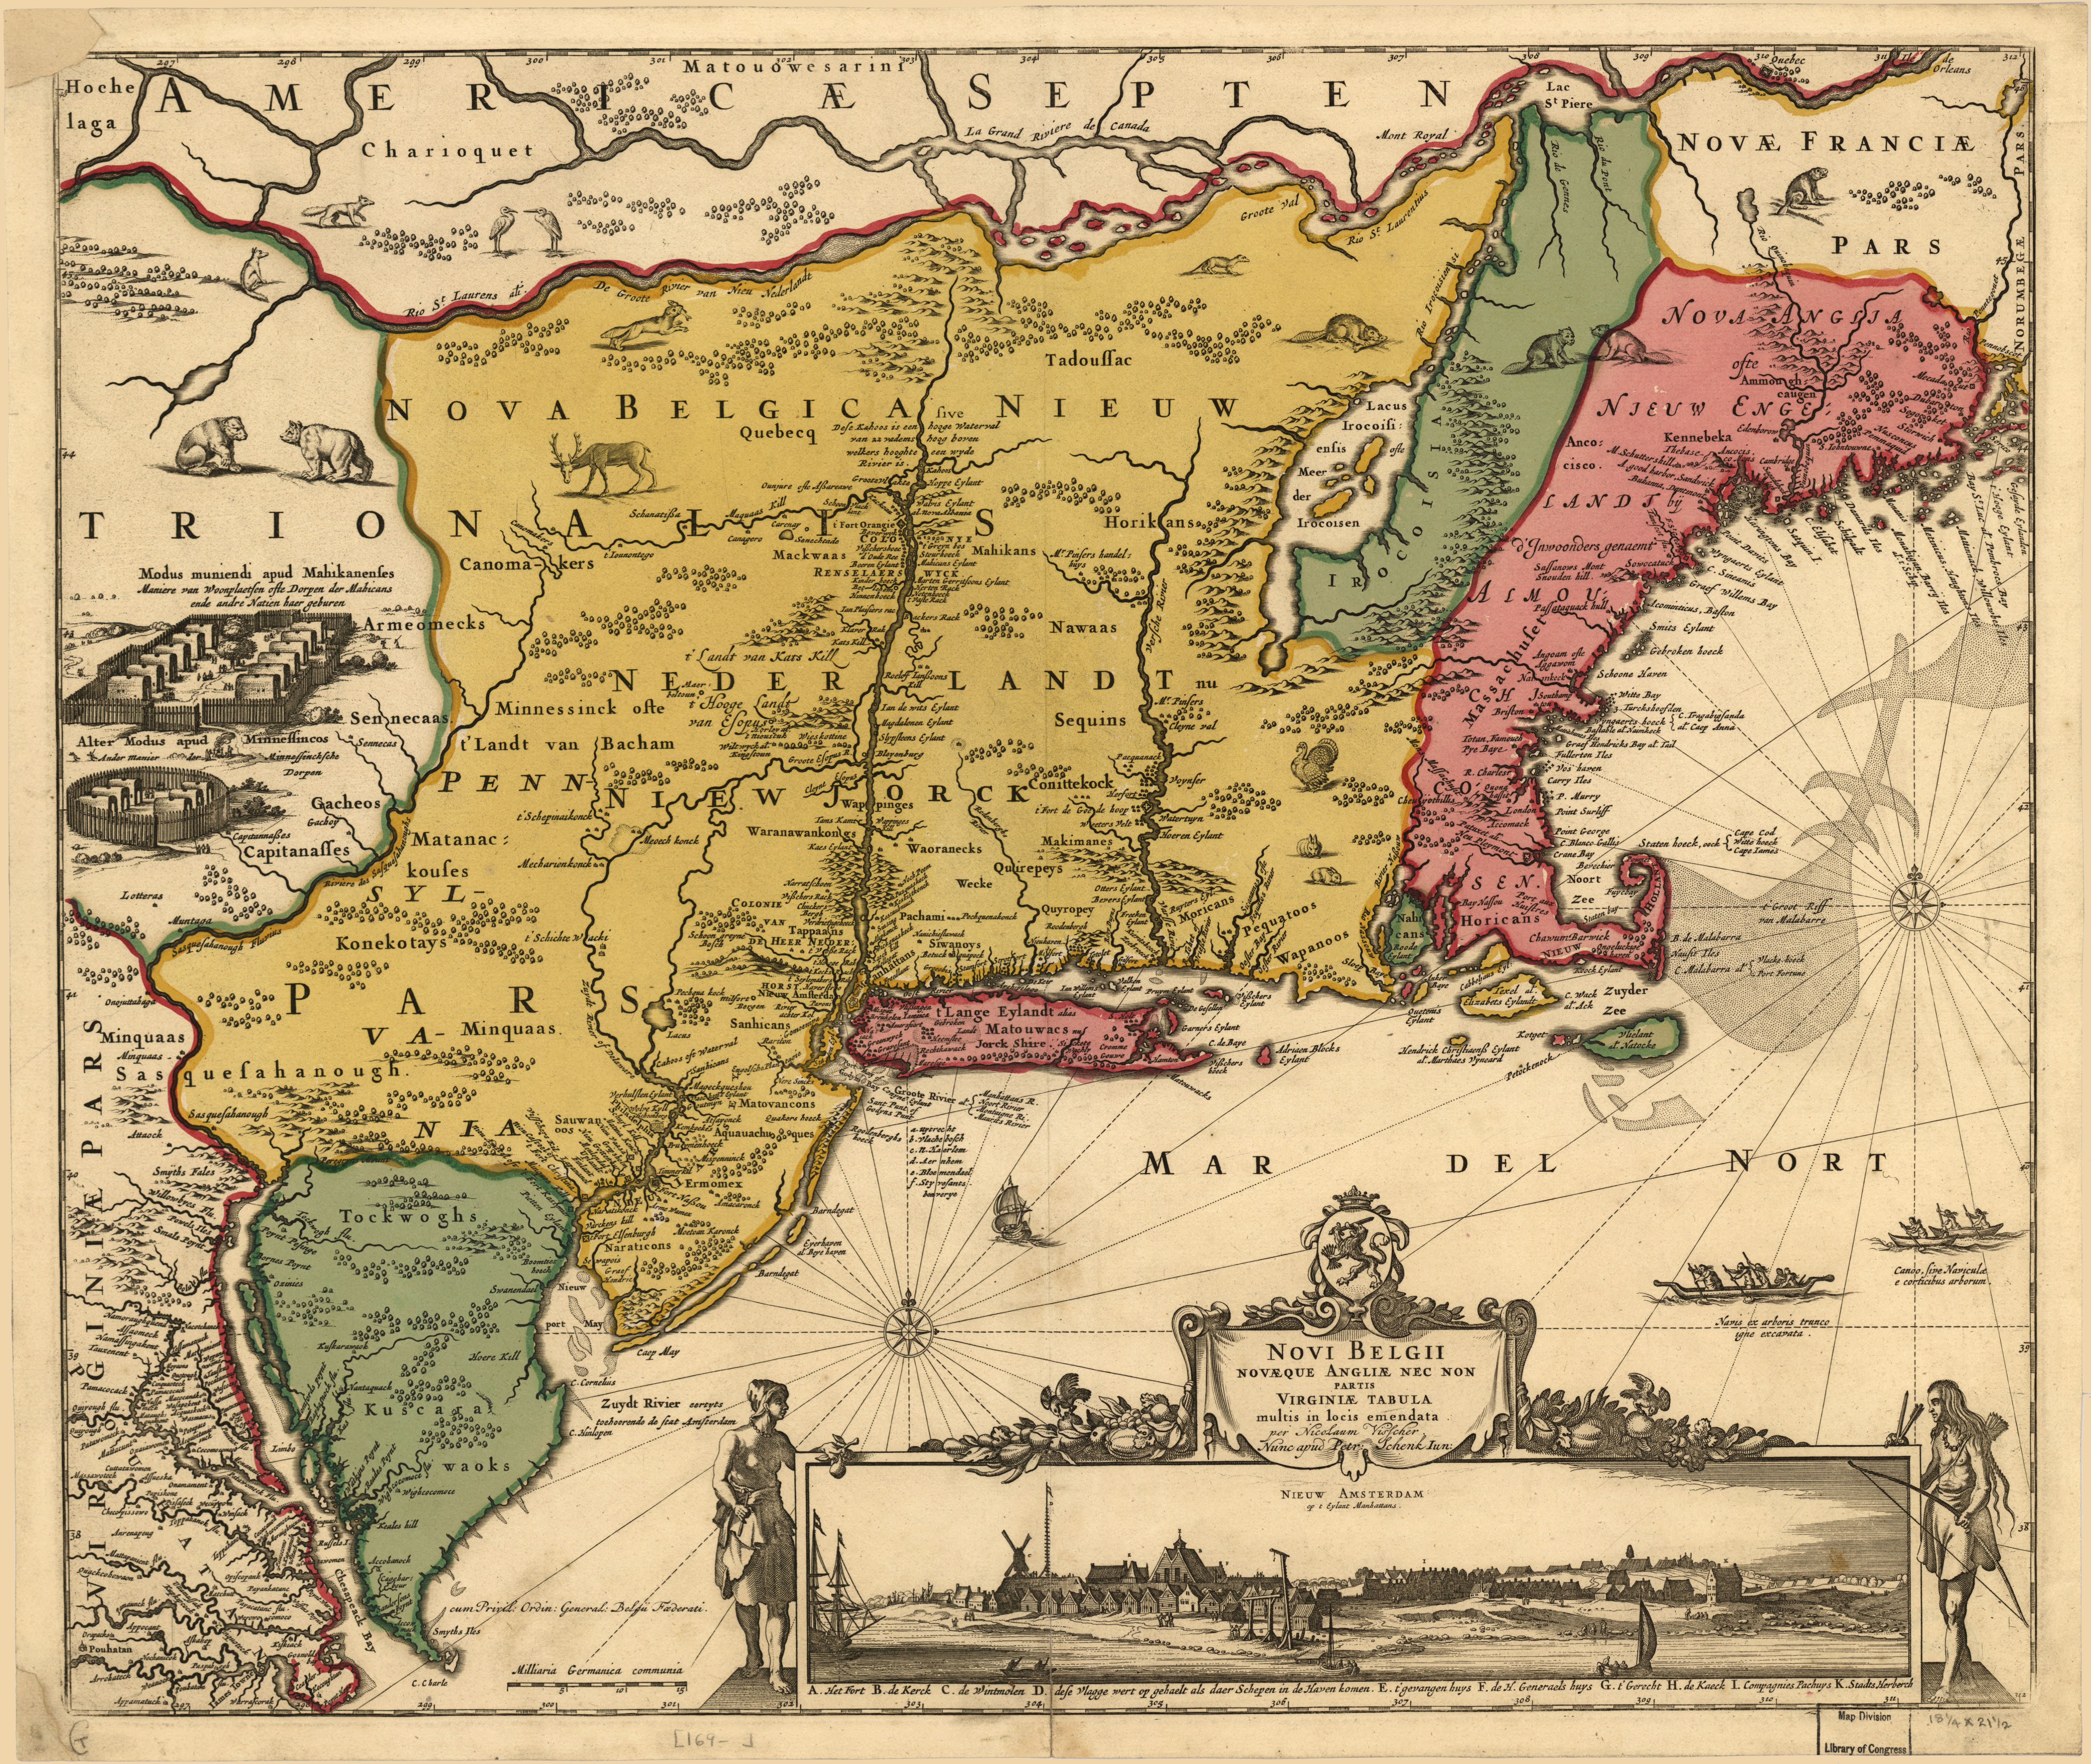 Dutch colonization of the americas wikipedia 1685 reprint of a 1656 map of the dutch north american colonies showing extent of dutch claims from chesapeake bay and the susquehanna river in the south publicscrutiny Images